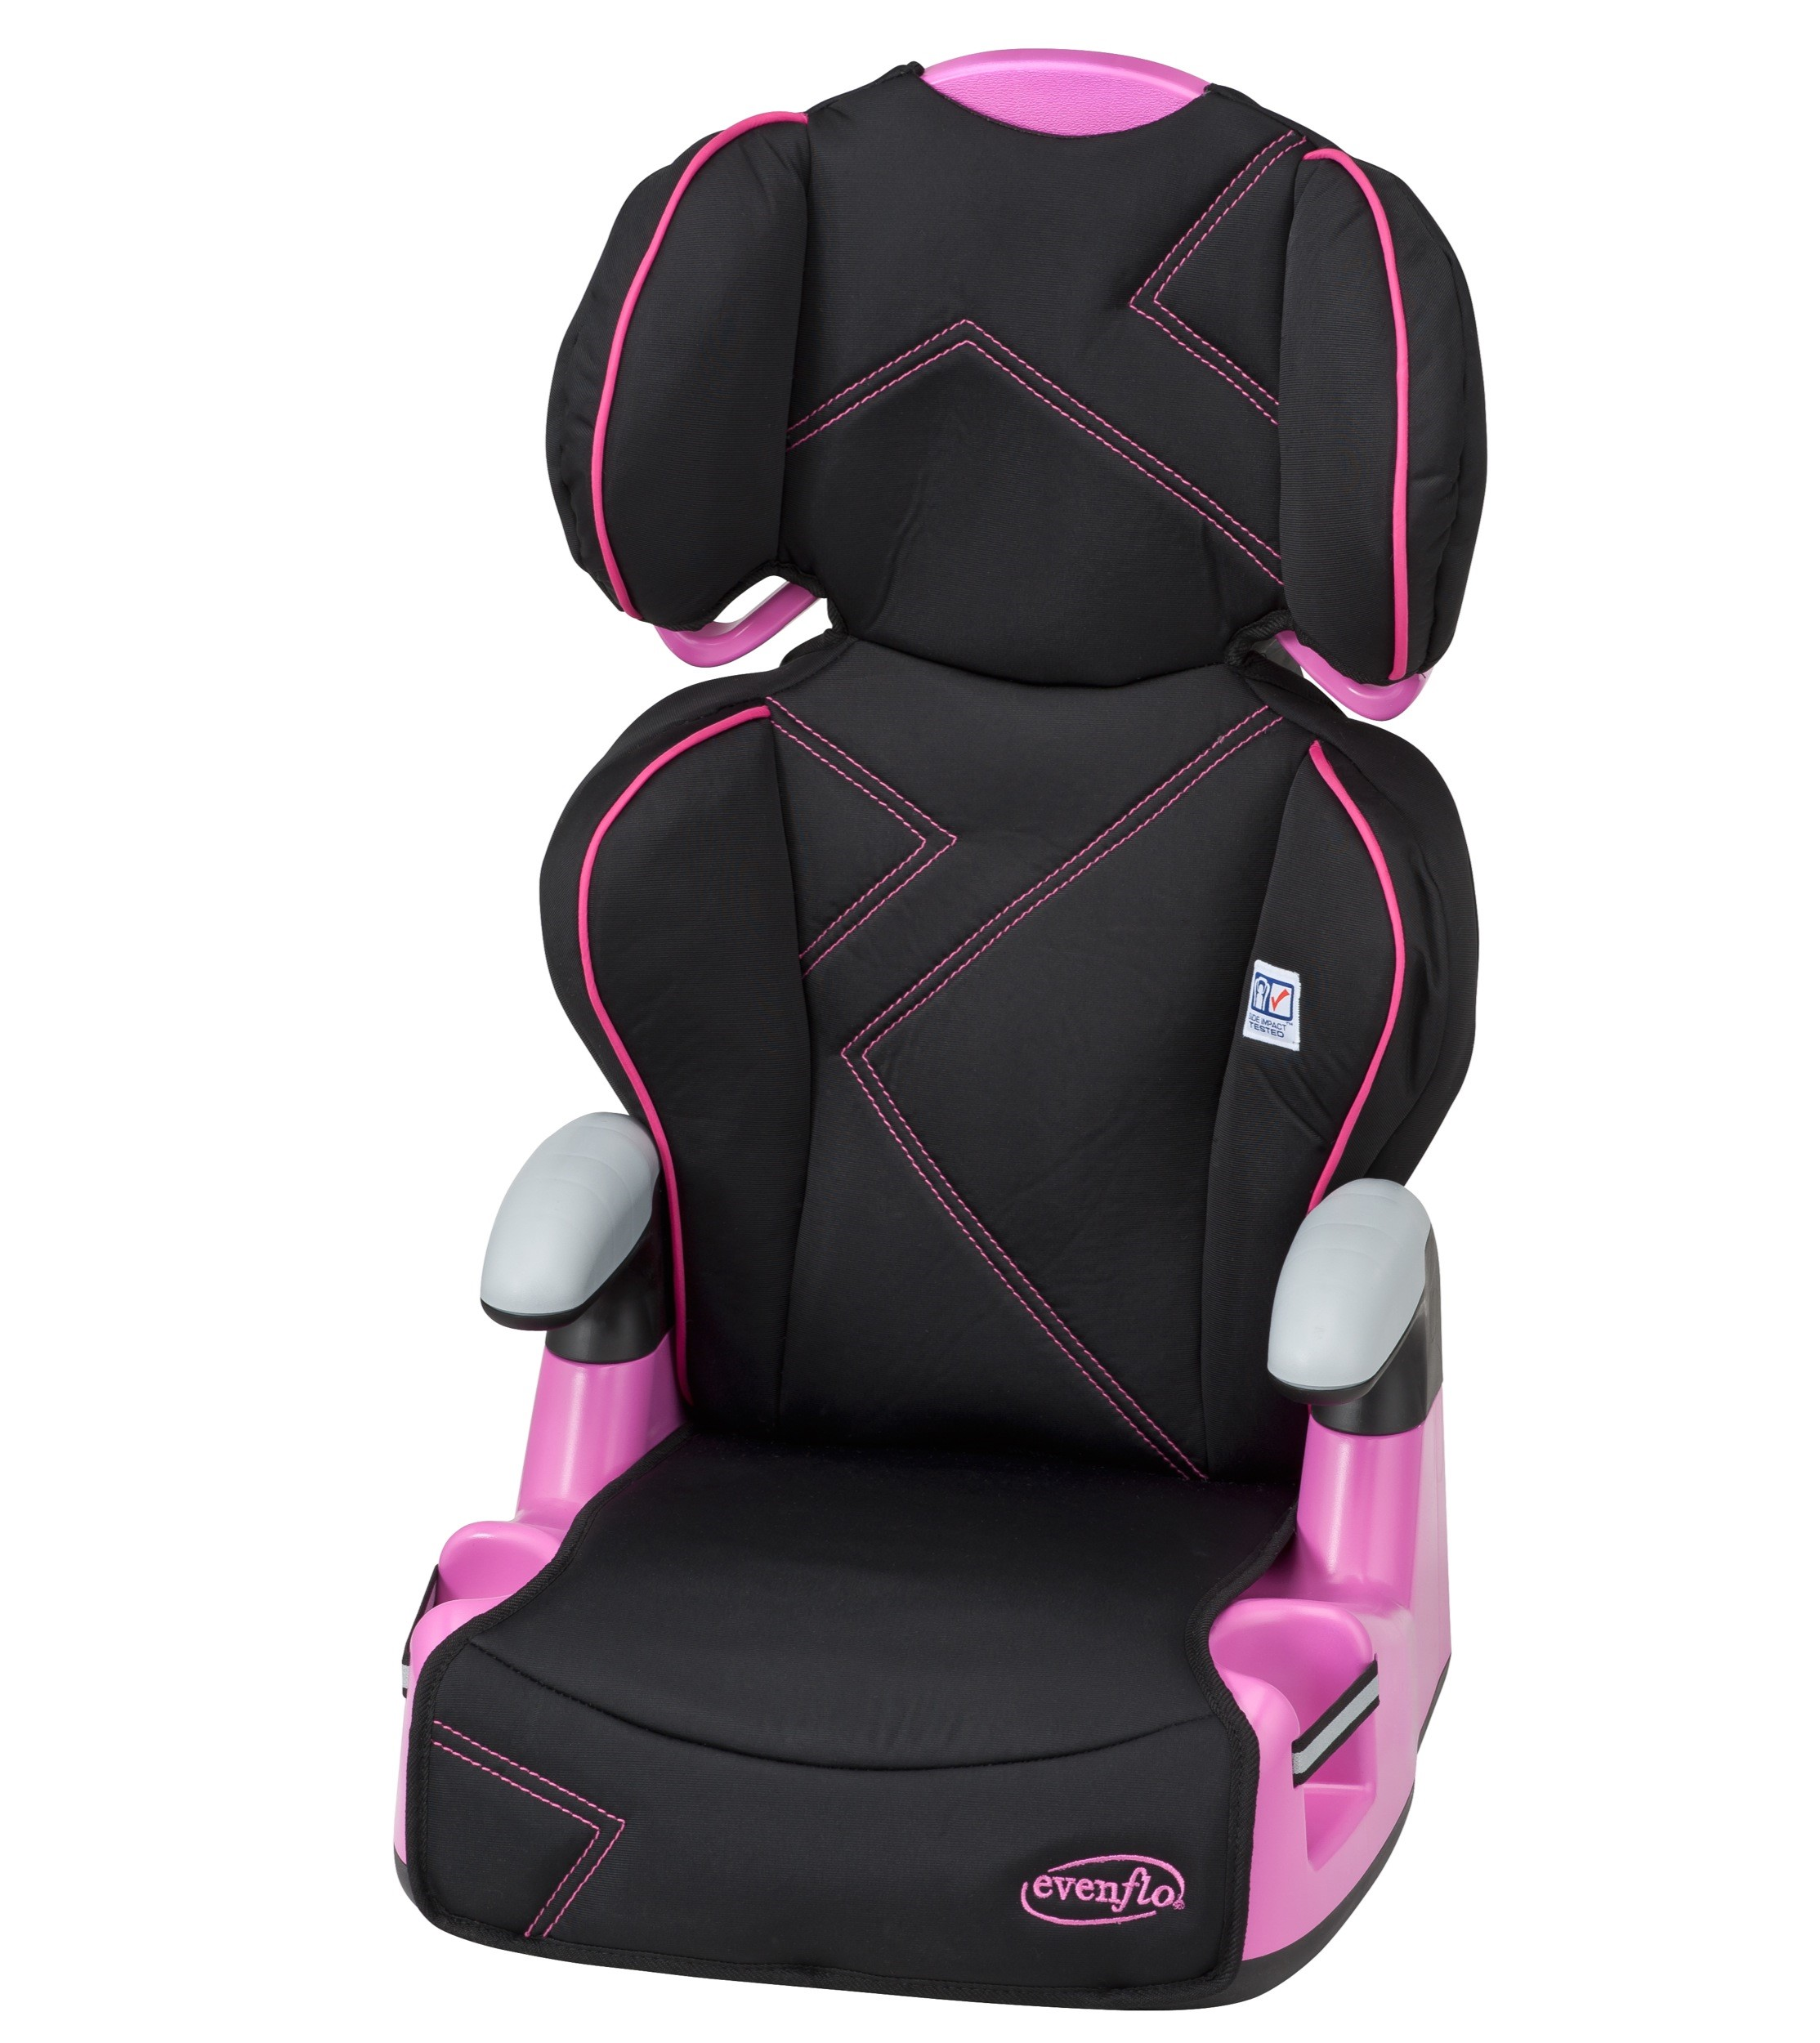 Evenflo AMP Belt-Positioning High Back Booster Car Seat, Pink Angles